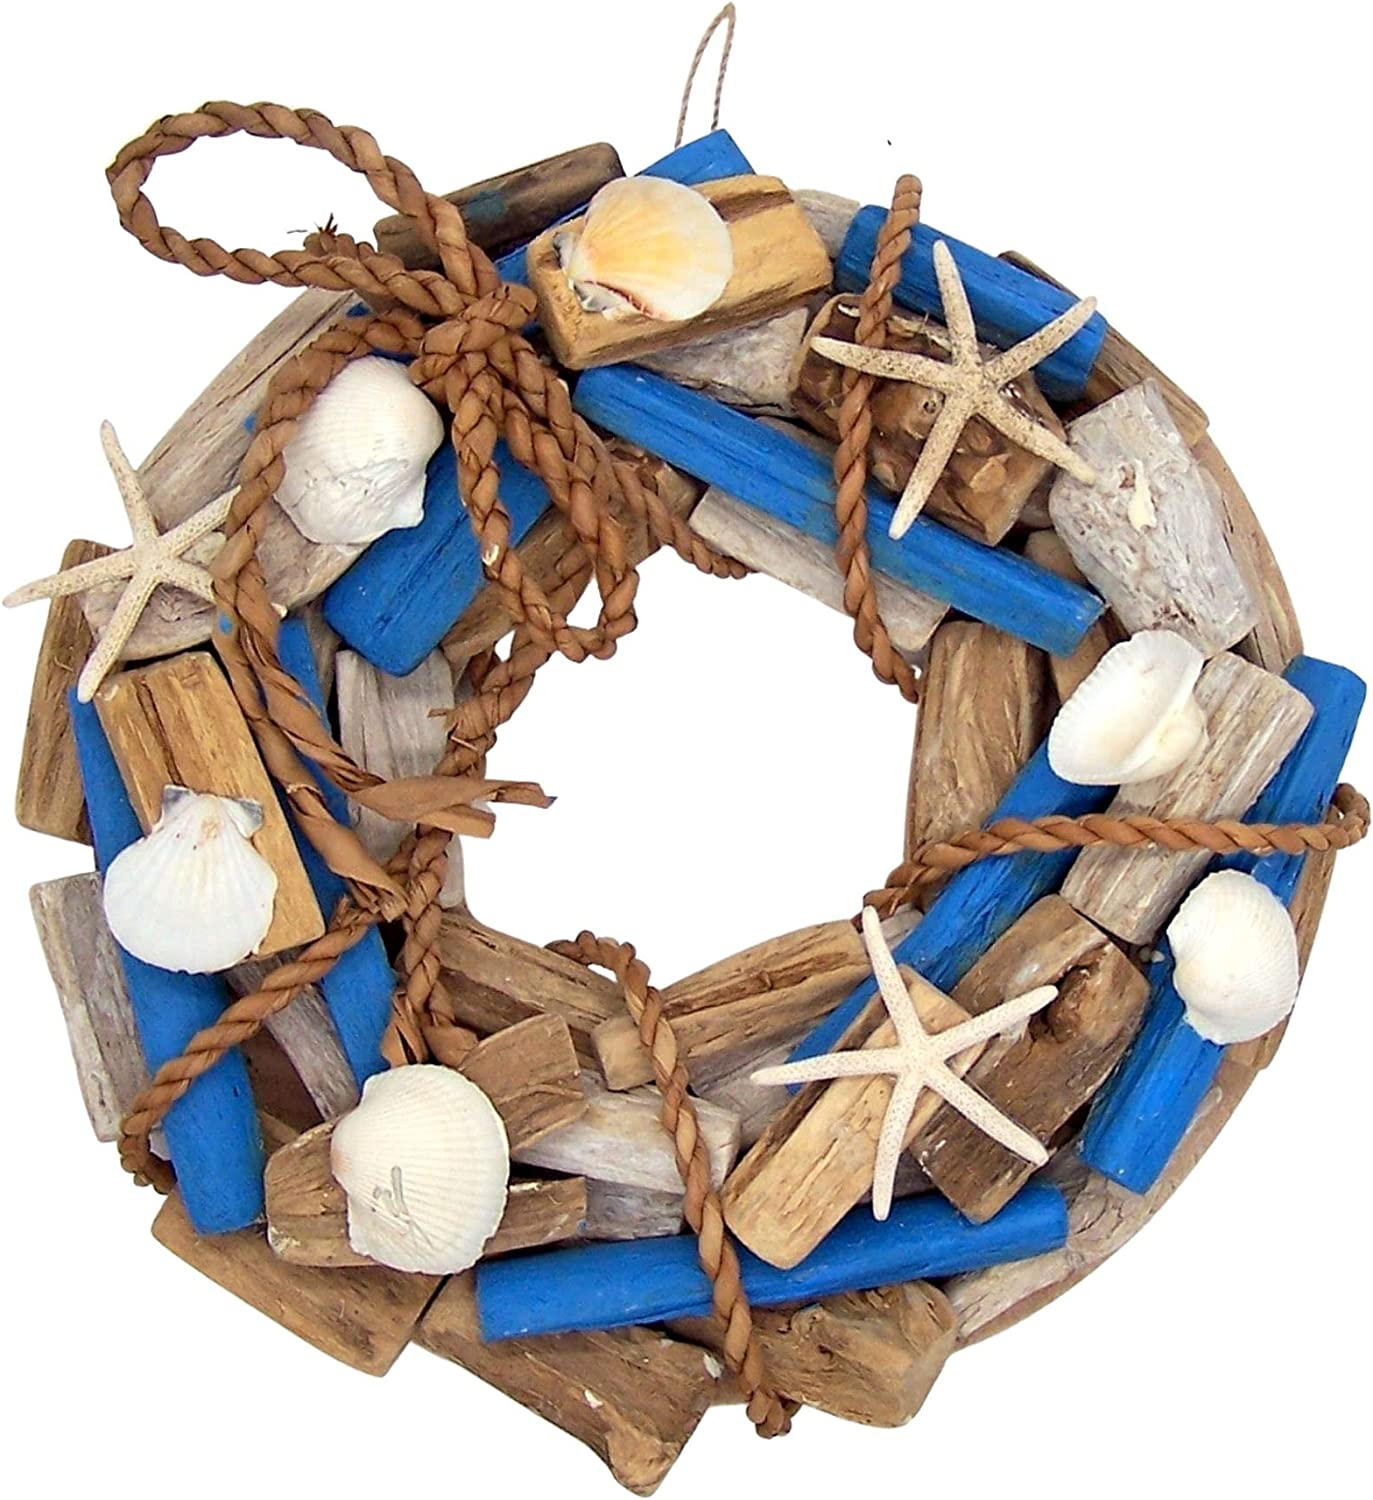 Starfish and Seashell Driftwood Wreath for Front Door, Beach Themed Décor, 15 Inches